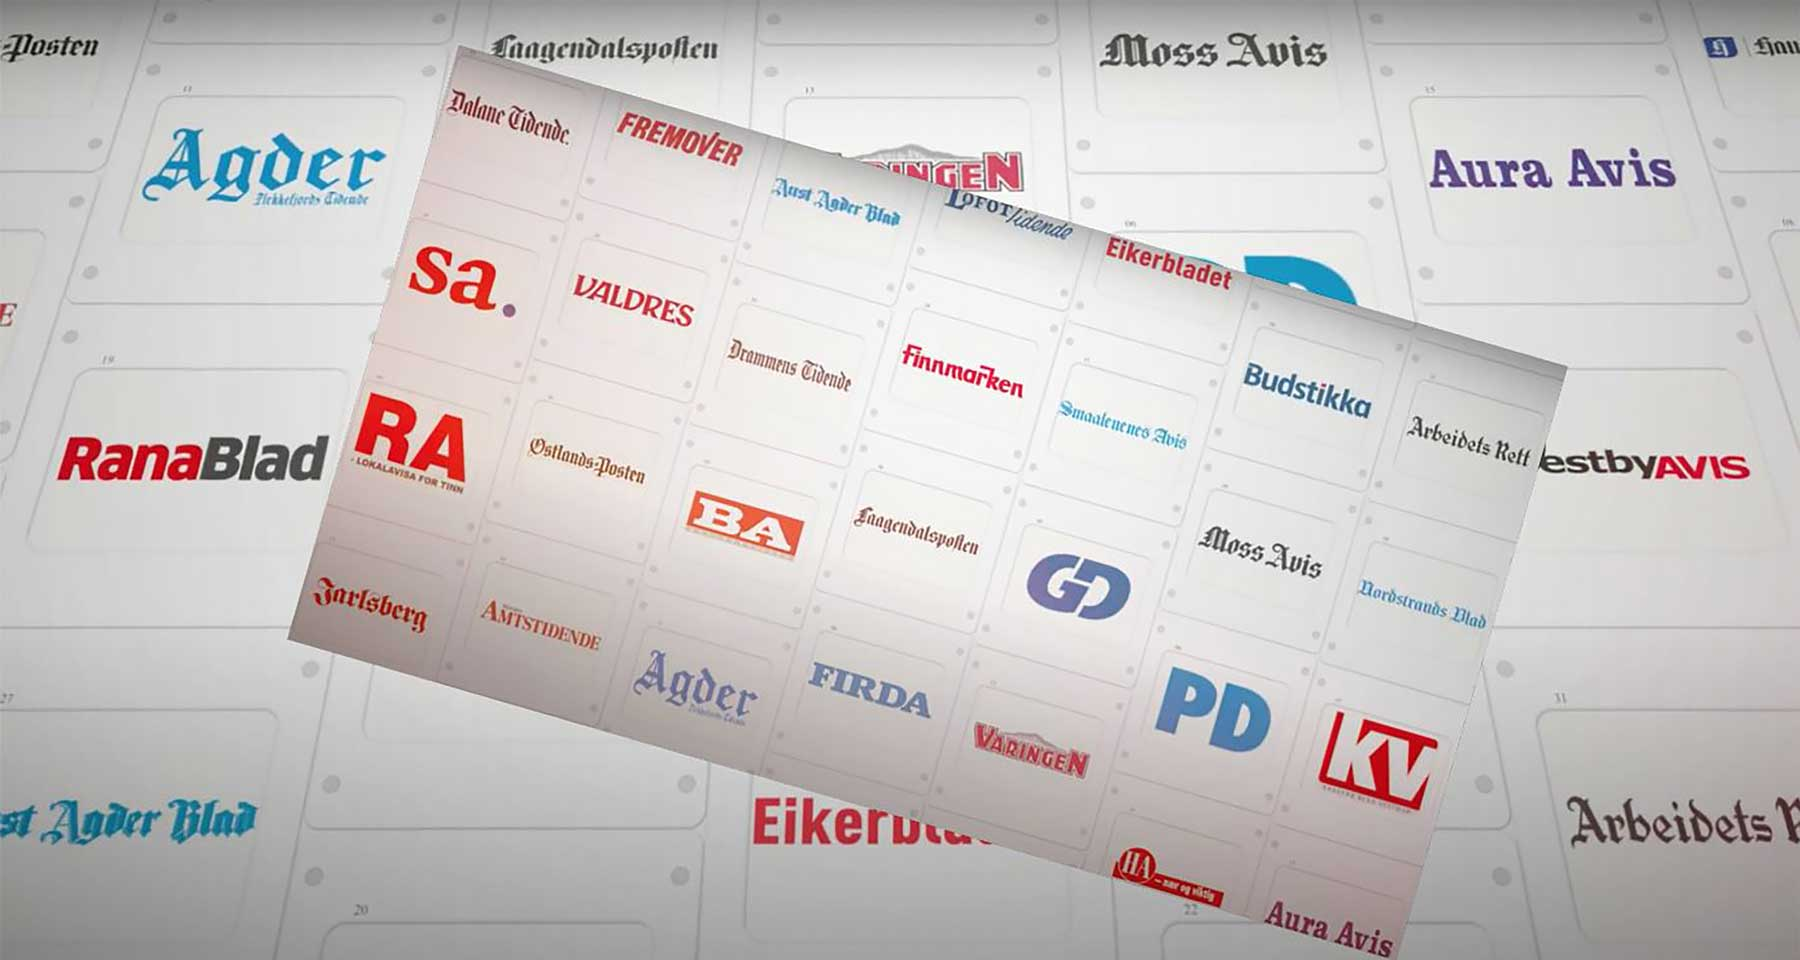 Amedia builds premium news service, gets 120,000 paying subscribers in 8 months